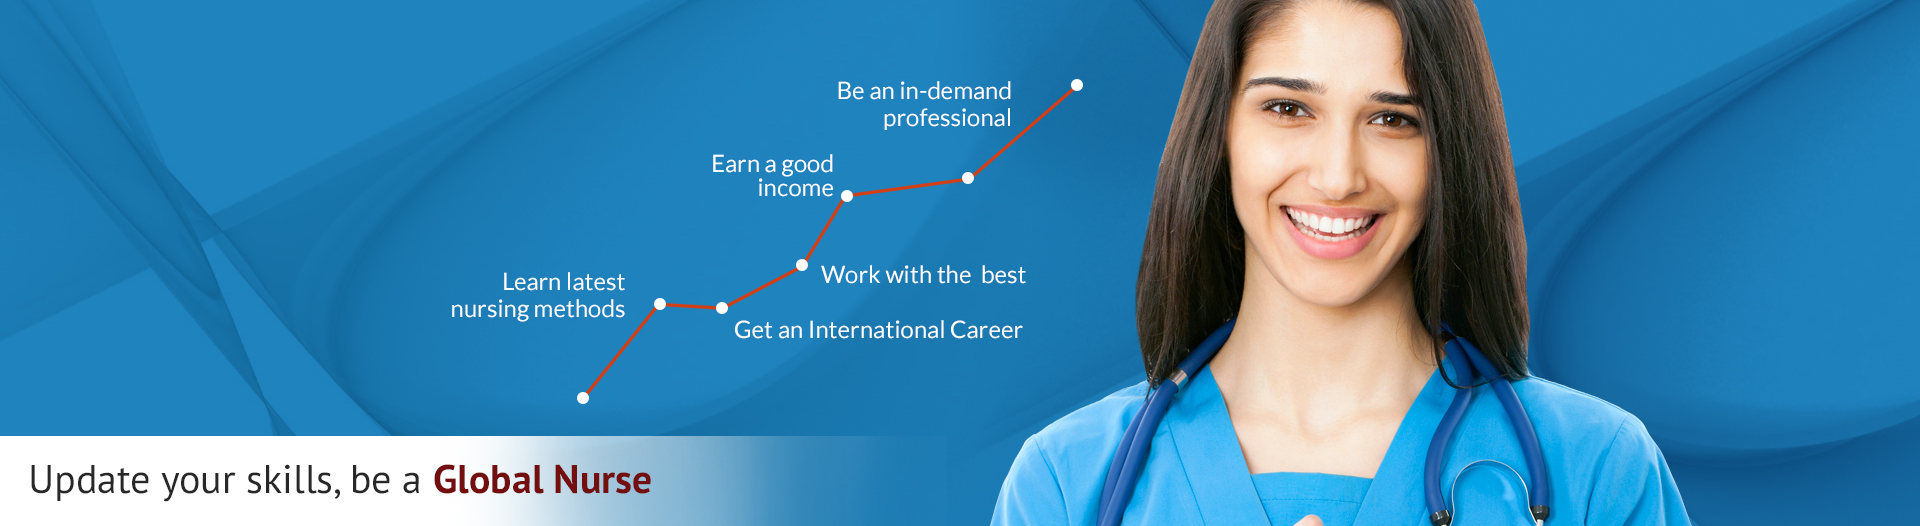 INSCOL Global Nurse Program